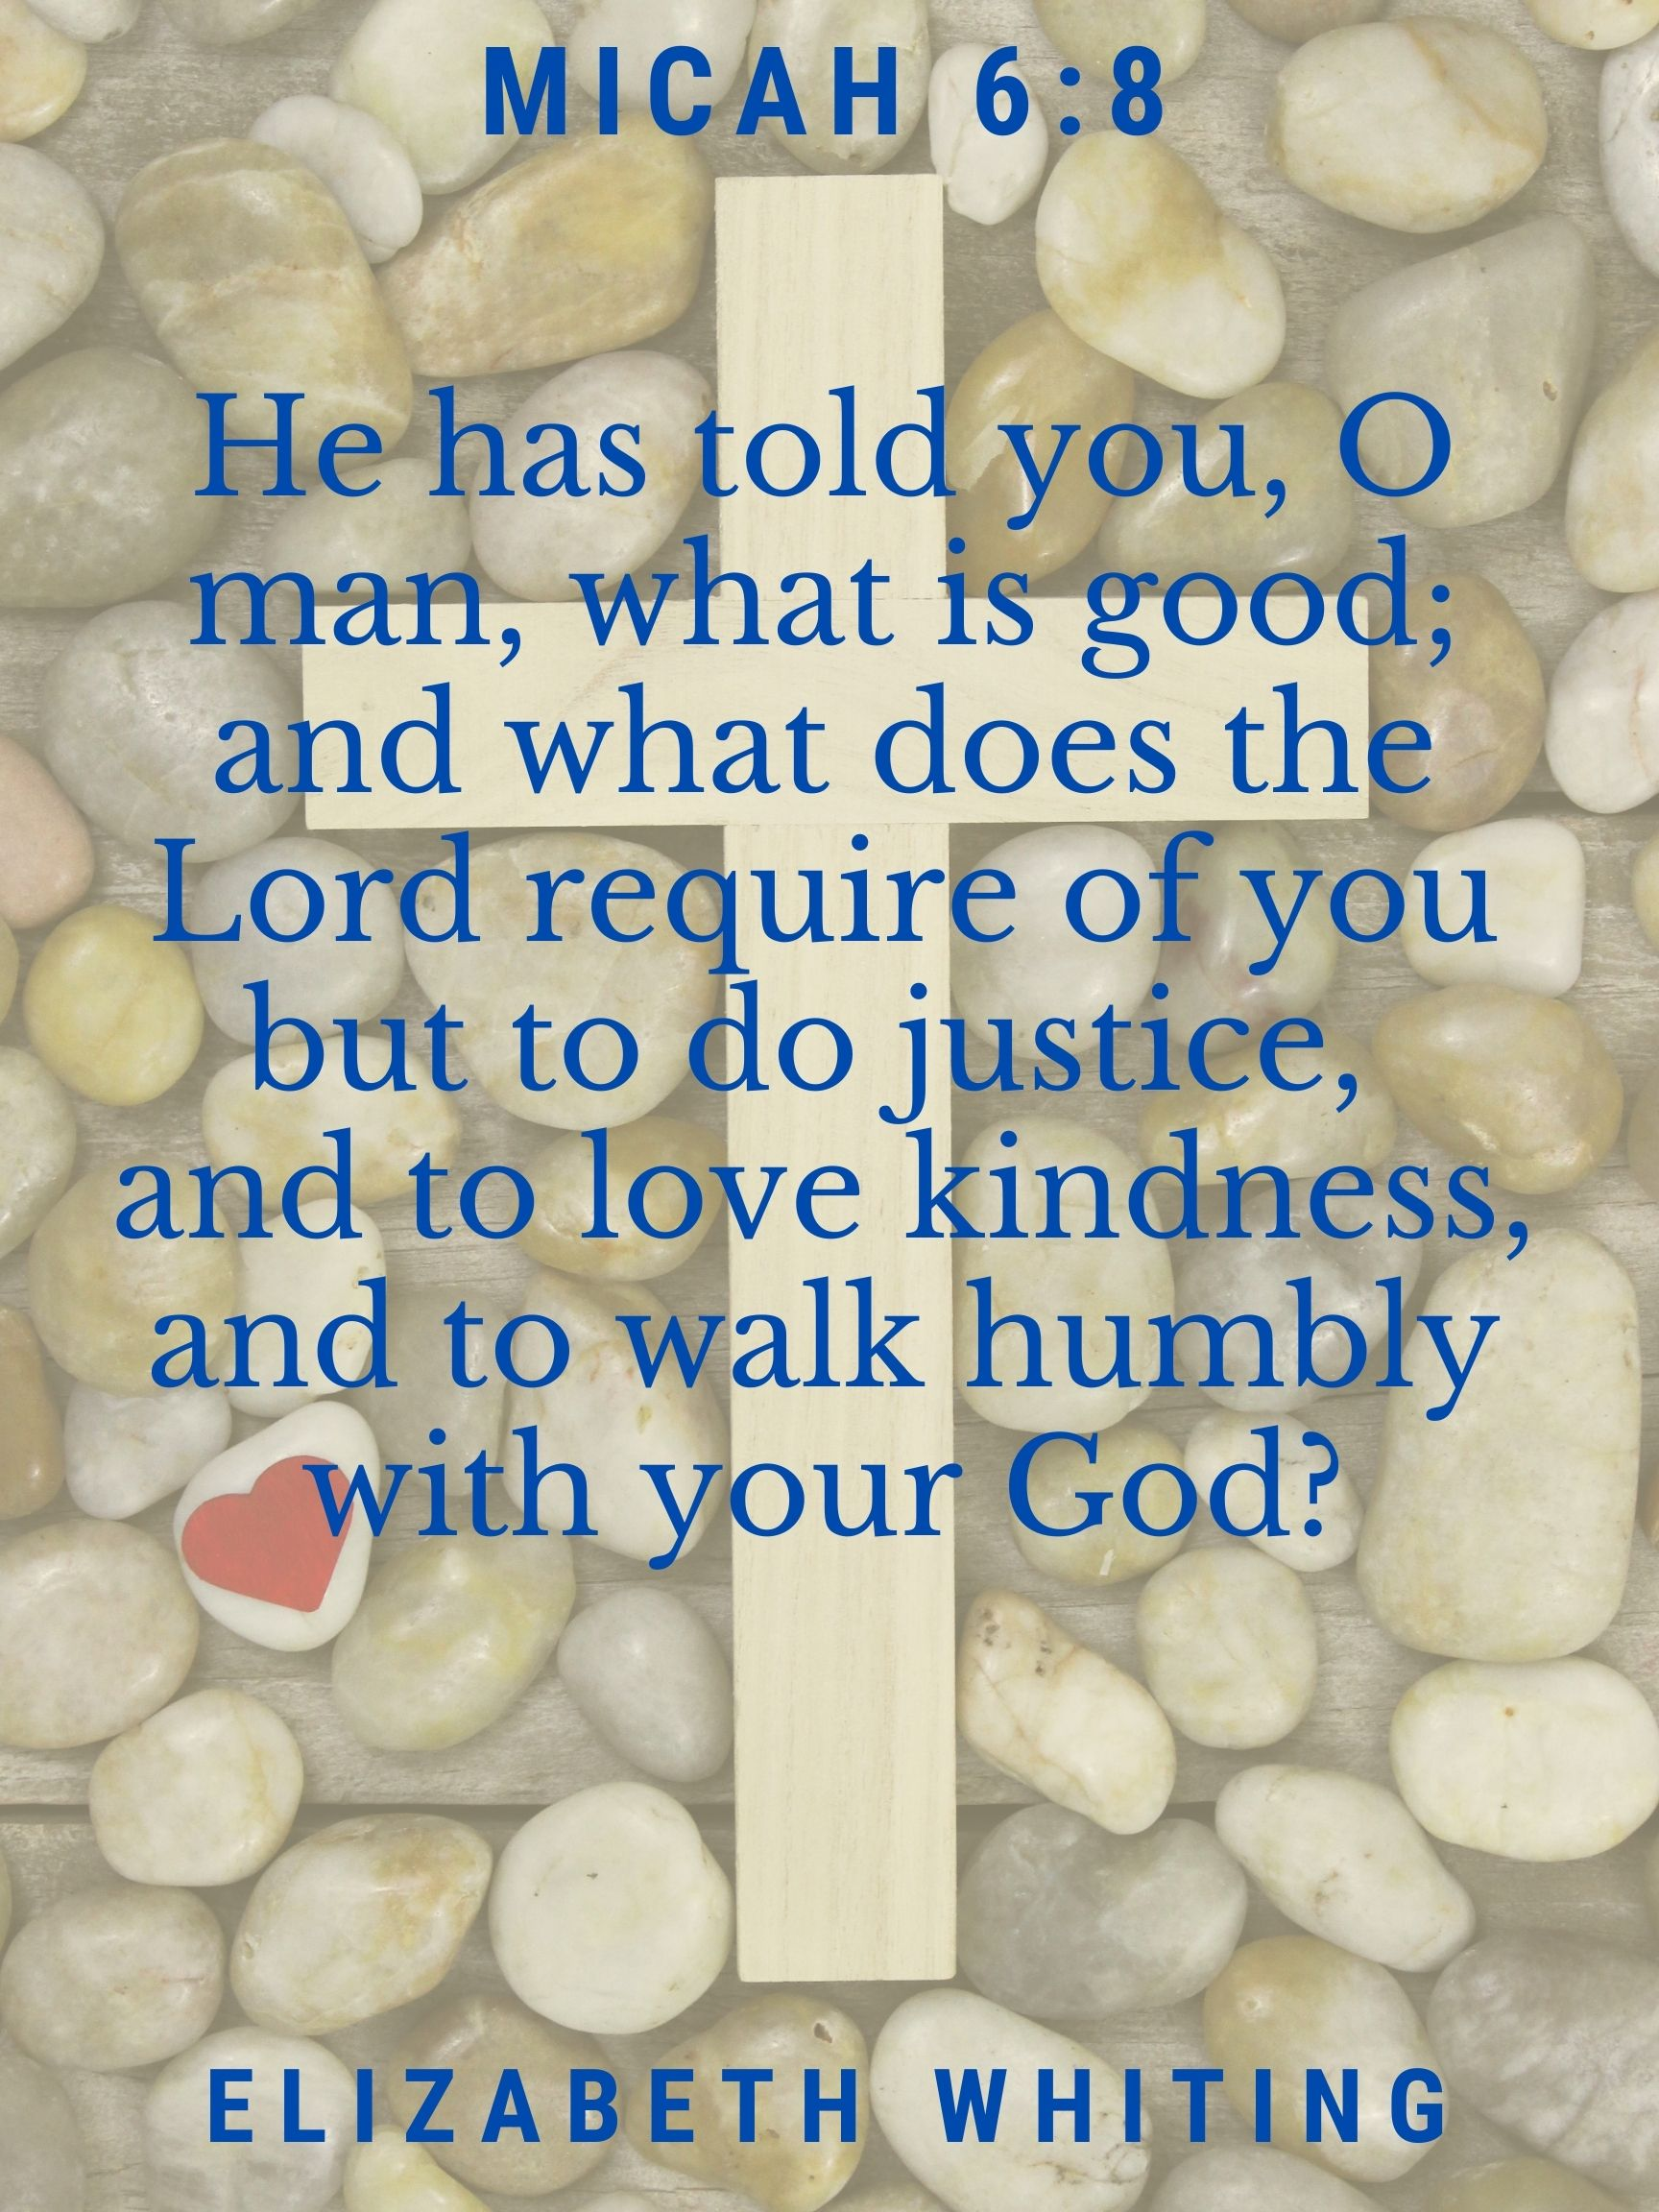 He has told you, O man, what is good; and what does the Lord require of you but to do justice, and to love kindness, and to walk humbly with your God? Micah 6:8 Elizabeth Whiting